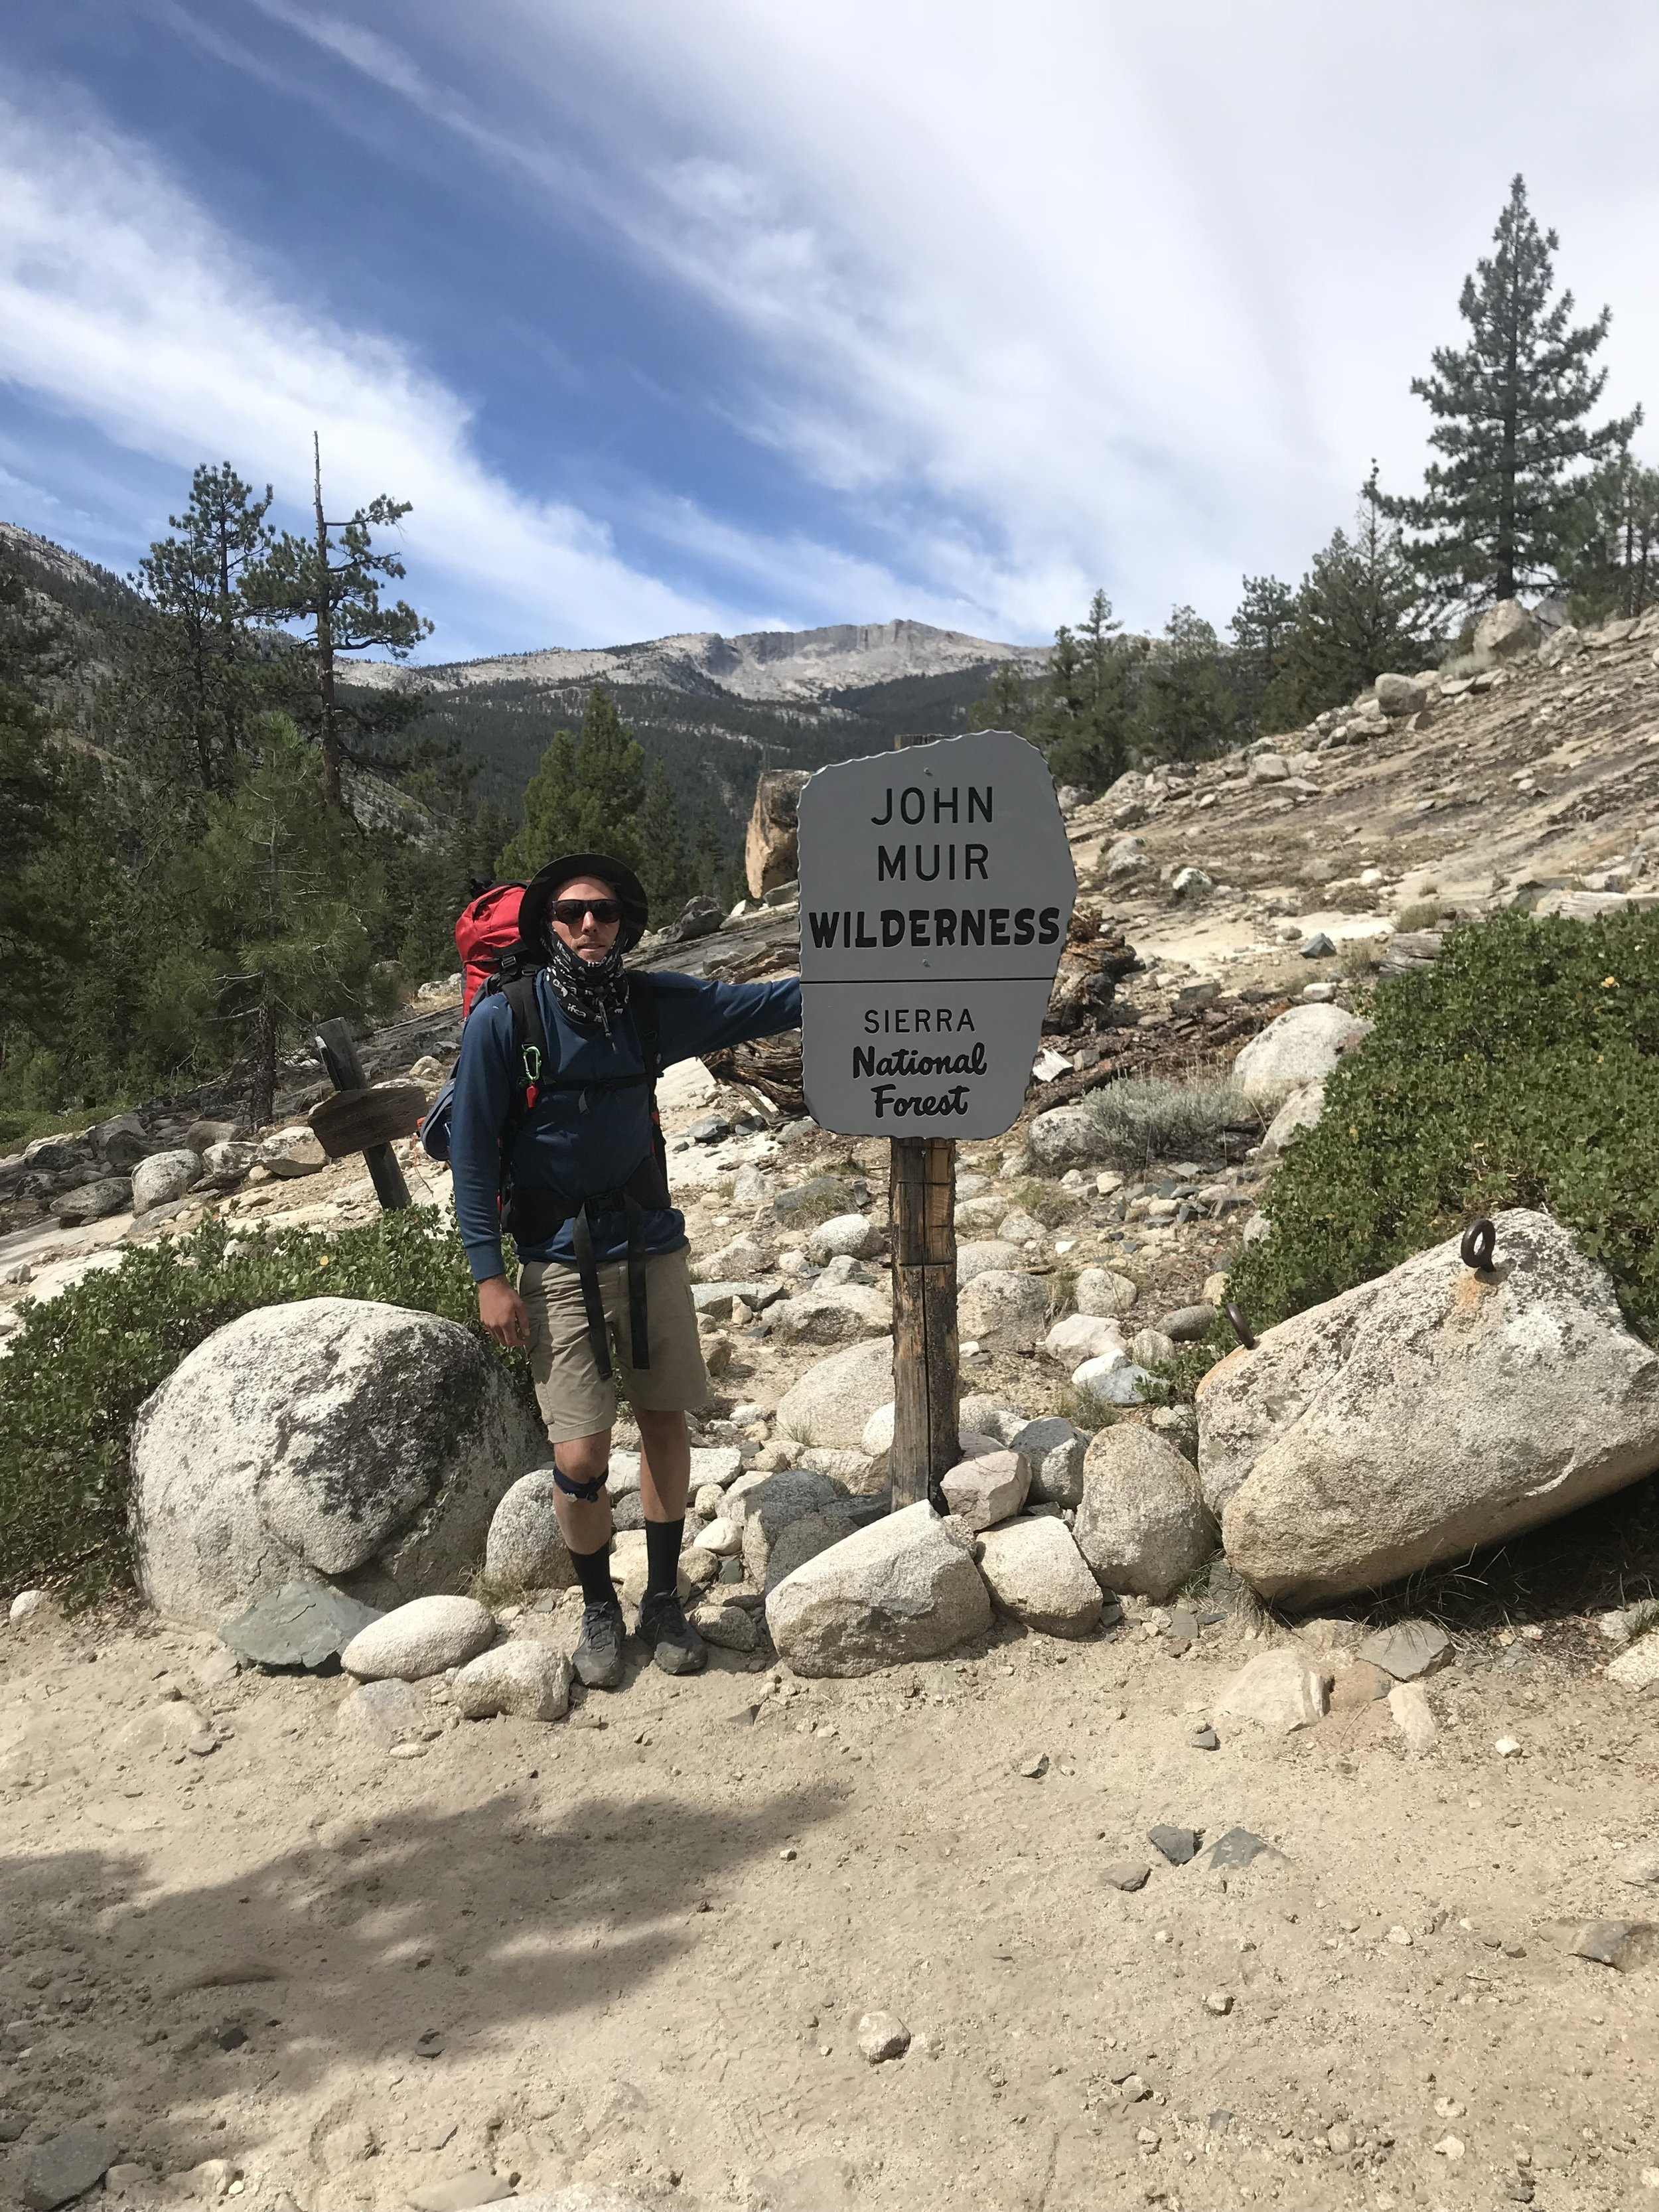 Exiting Kings Canyon, and entering John Muir Wilderness.